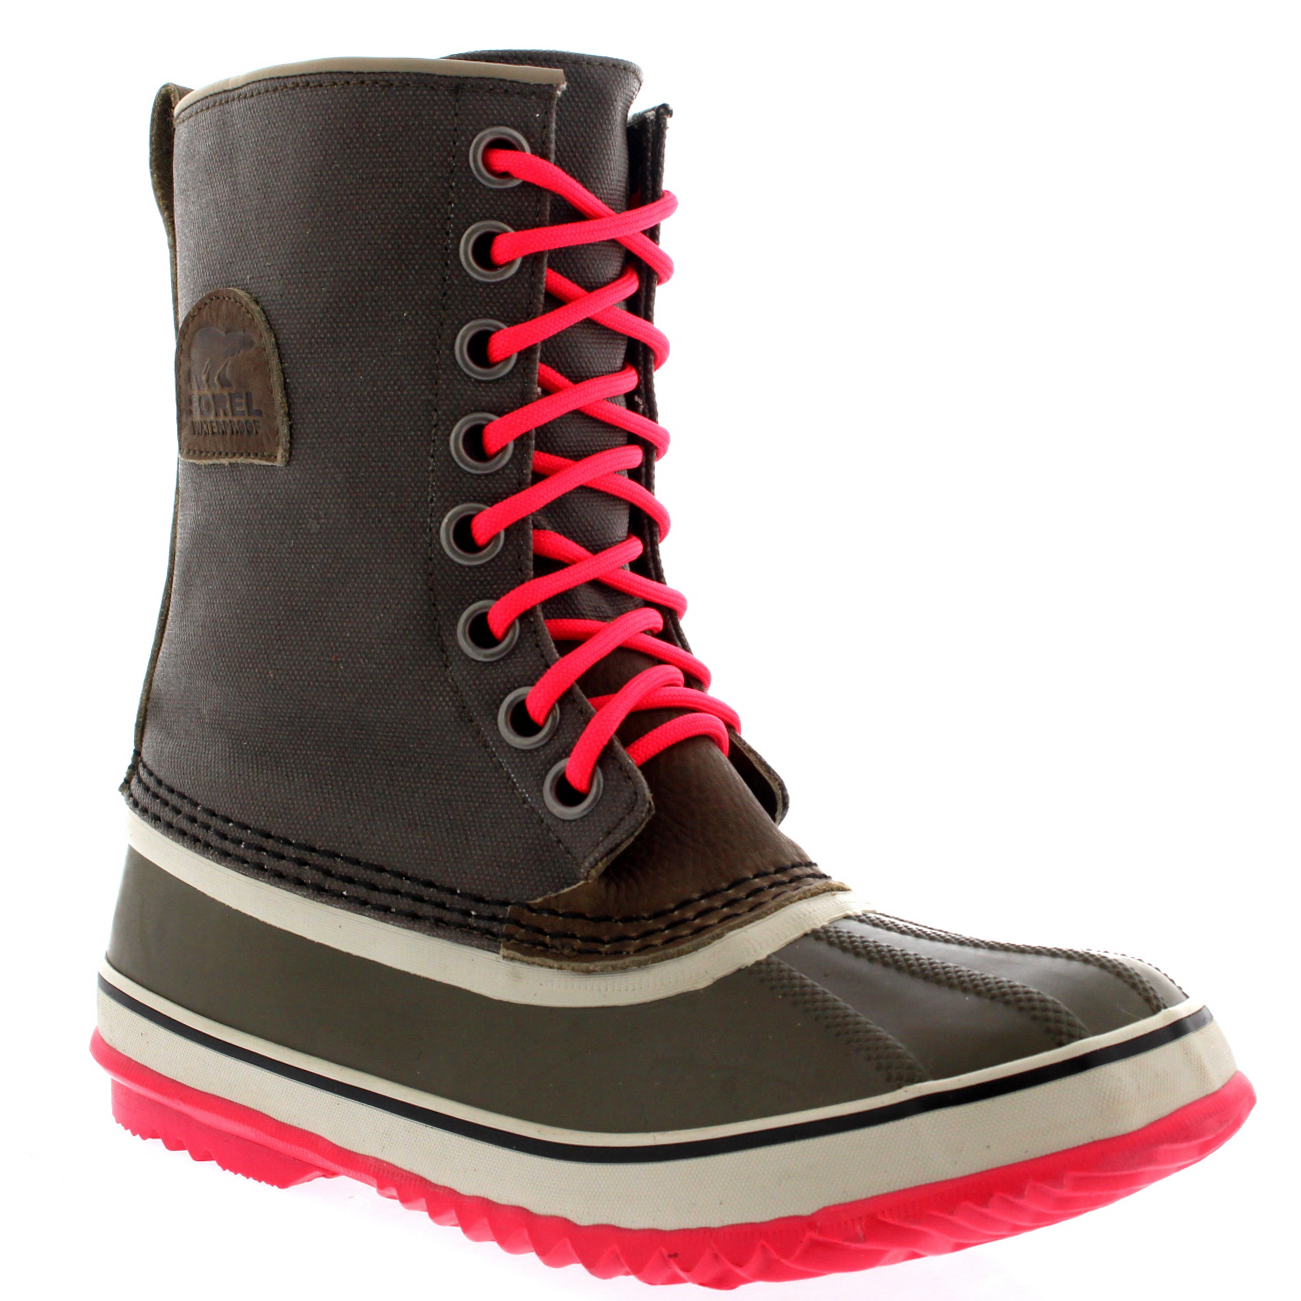 Innovative  Boots Shoes Sorel Tofino Premium Wp Women S Winter Boots Uk 3 5 Curry